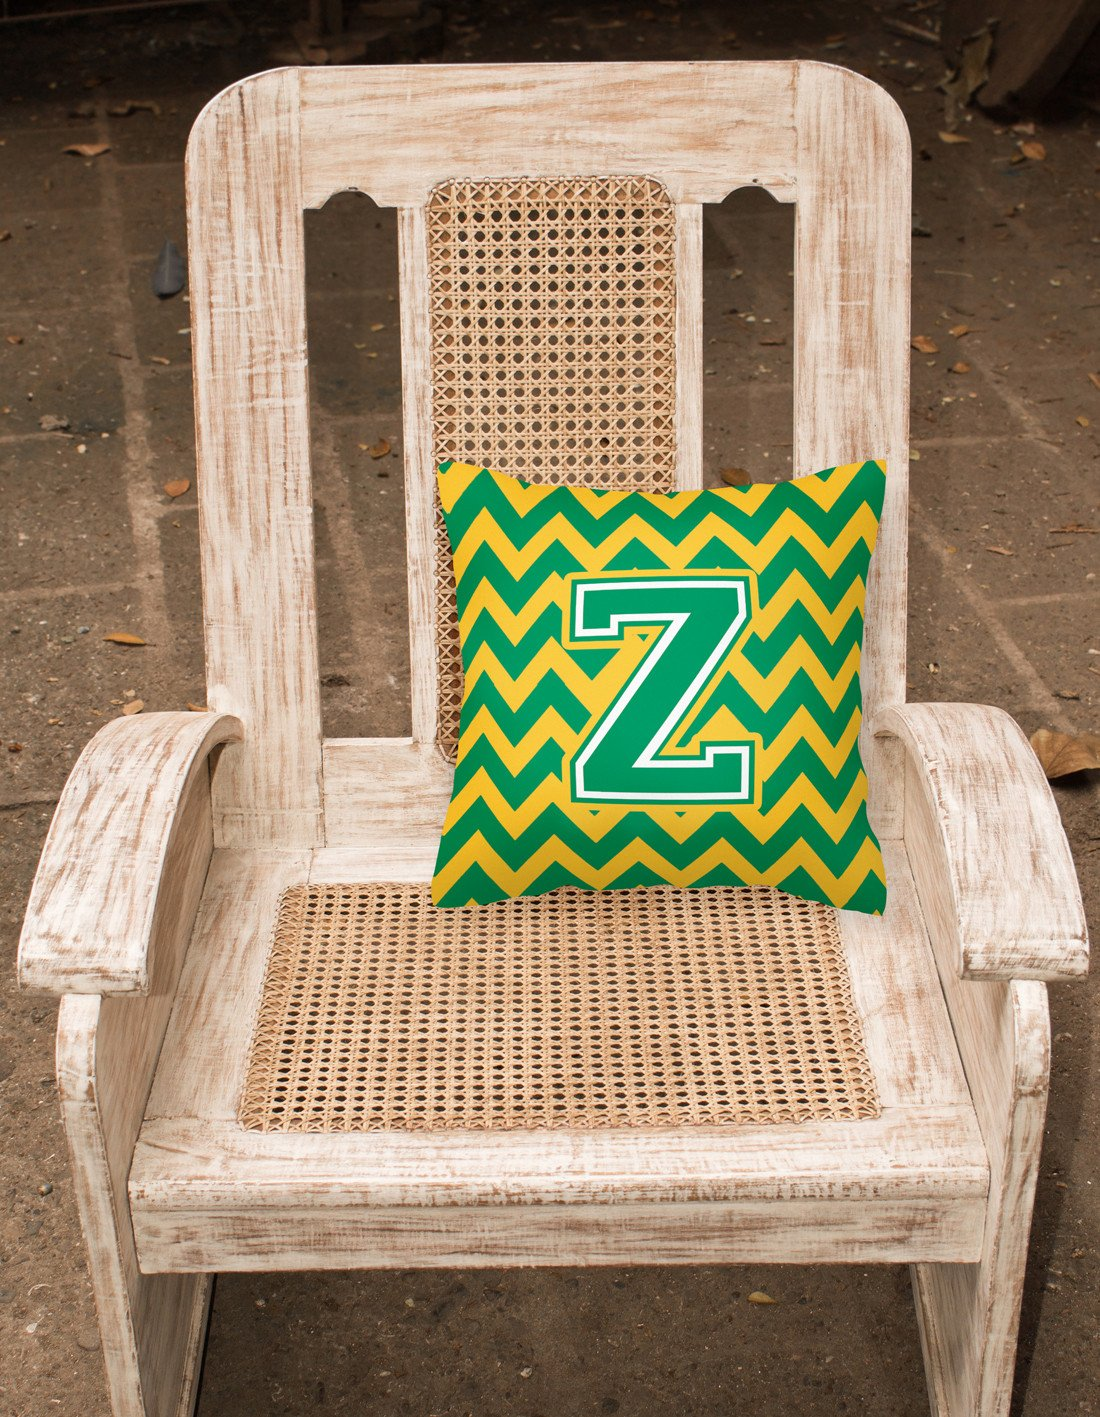 Letter Z Chevron Green and Gold Fabric Decorative Pillow CJ1059-ZPW1414 by Caroline's Treasures